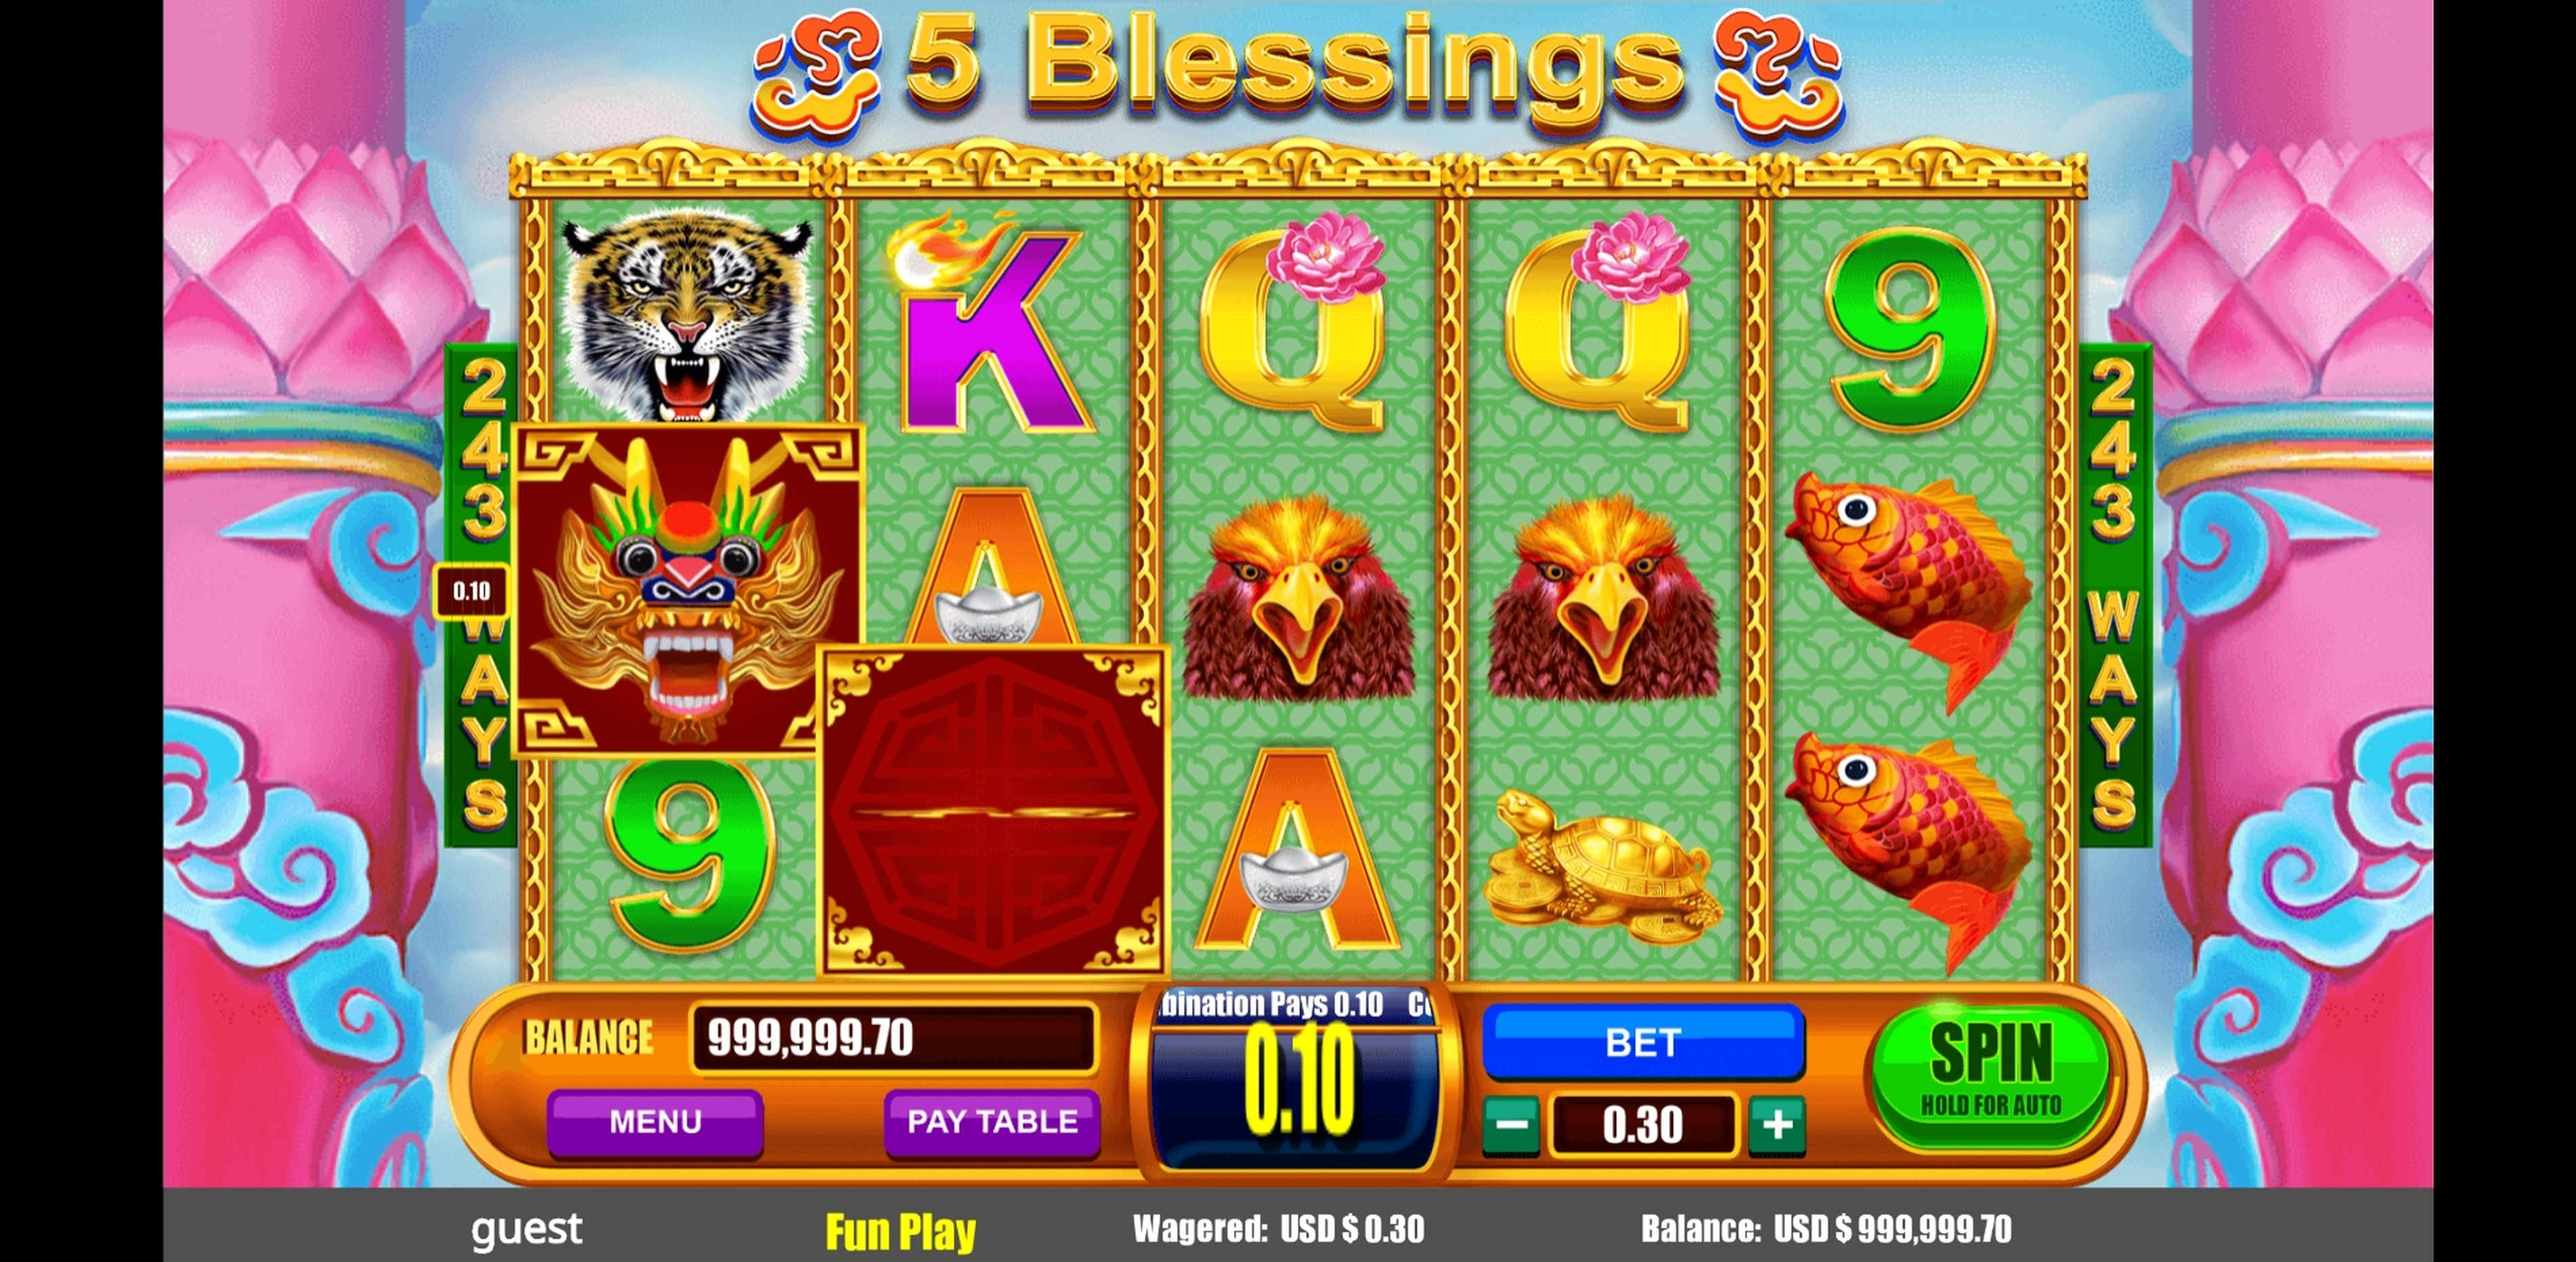 Win Money in 5 Blessings Free Slot Game by August Gaming